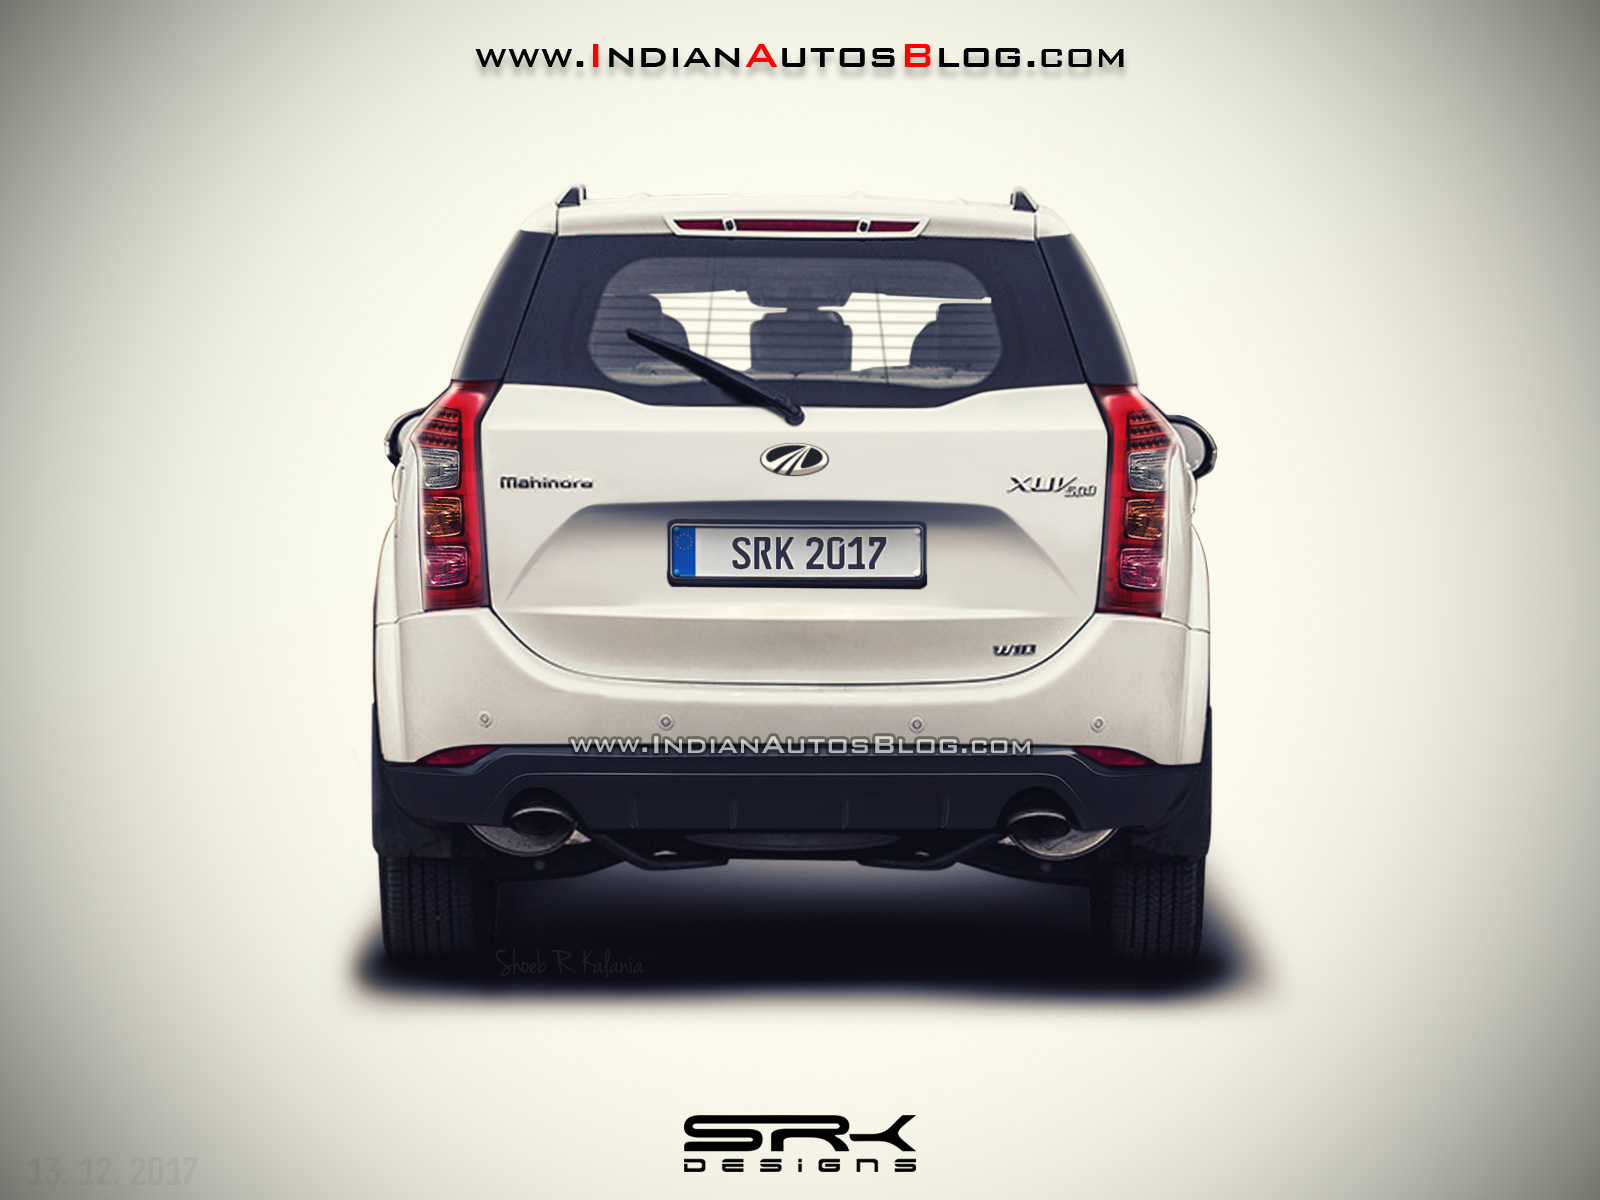 2018 Mahindra XUV500 (facelift) rear rendered by IAB